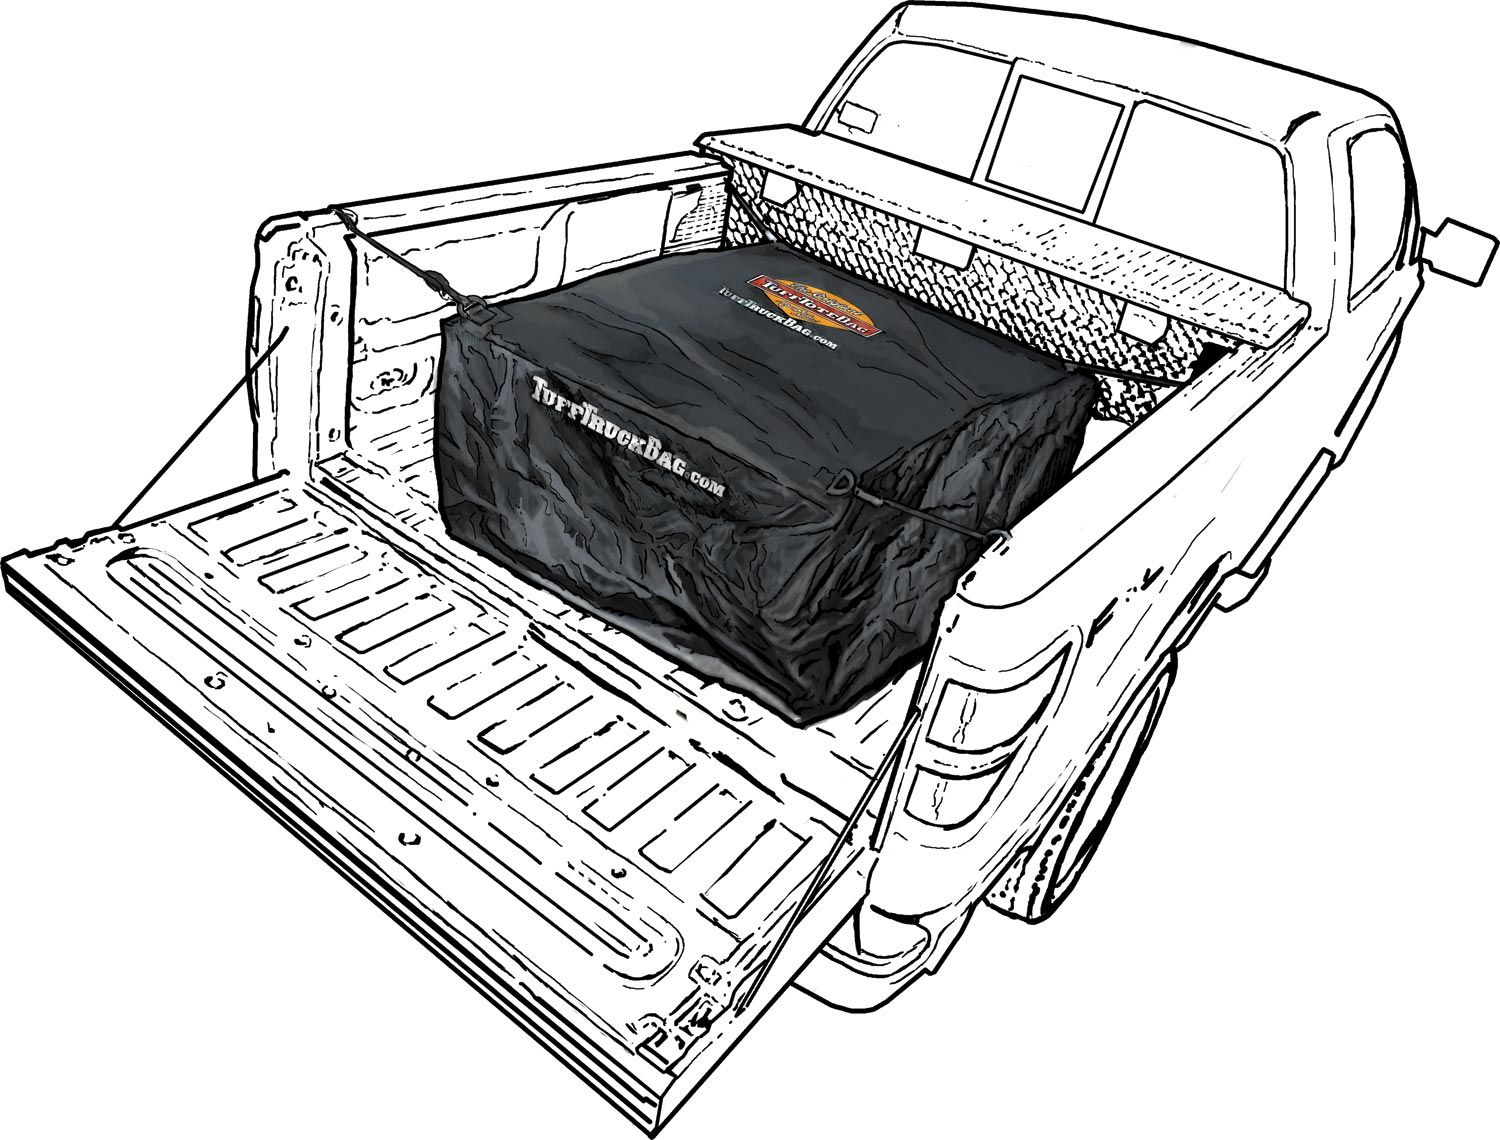 The Tuff Truck Bag is just as durable and waterproof as